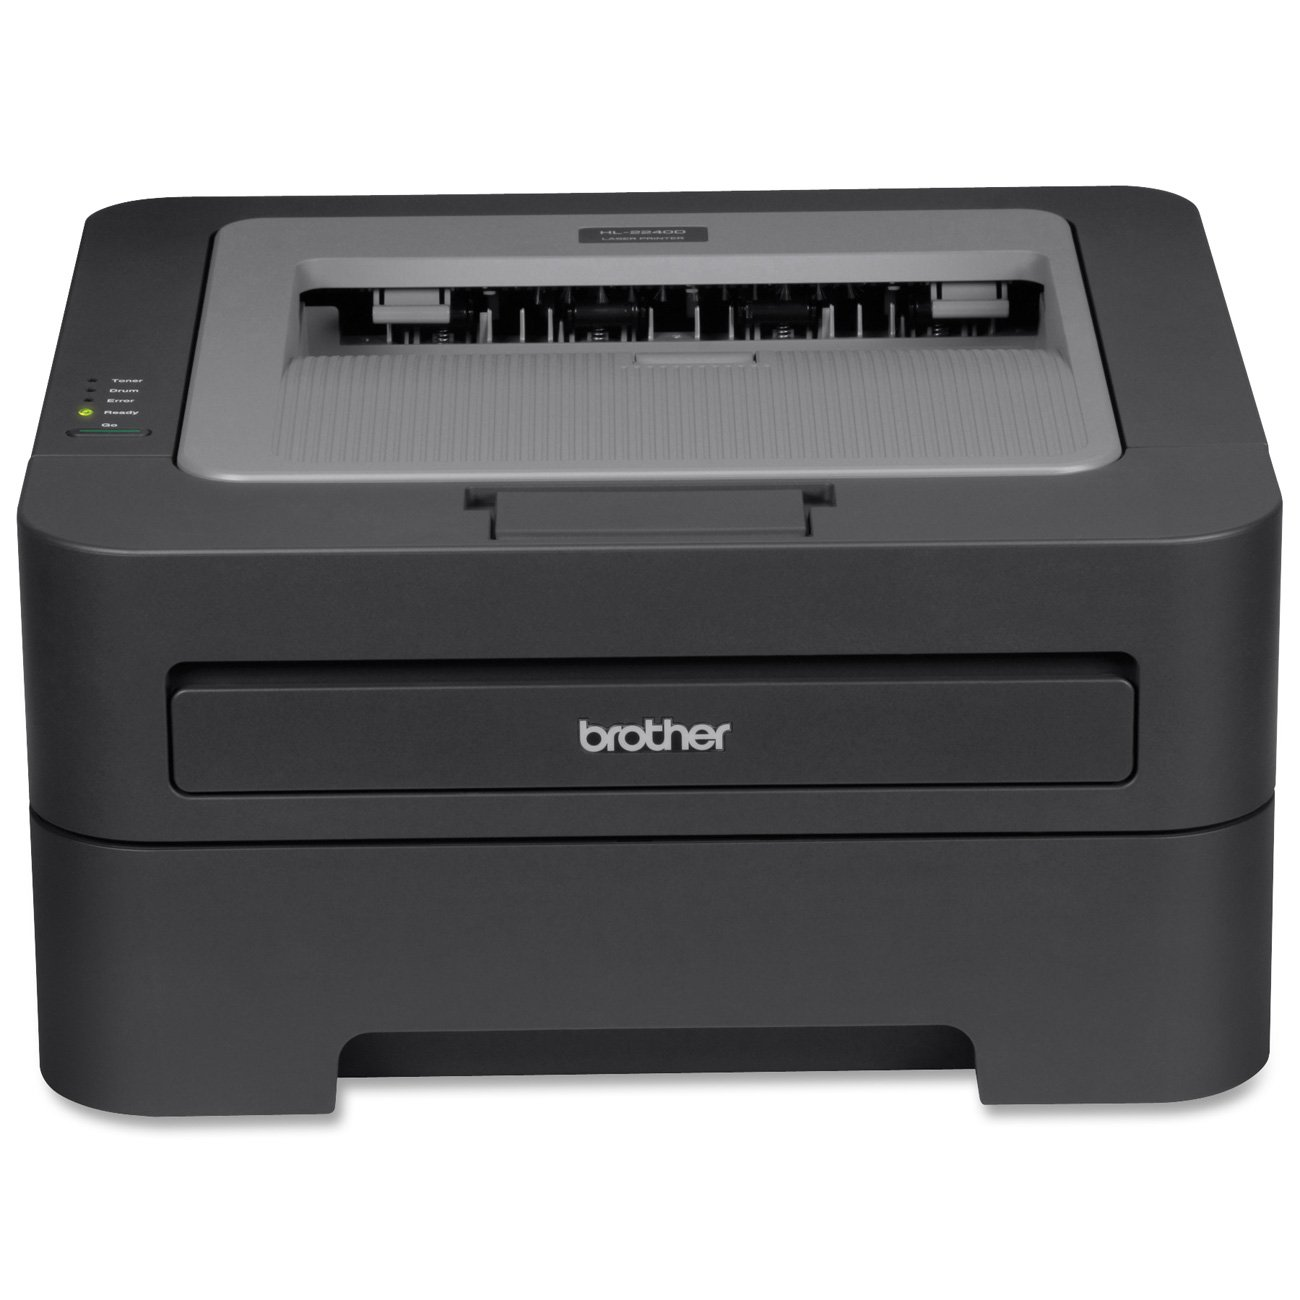 BROTHER HL2240D DRIVER FOR WINDOWS